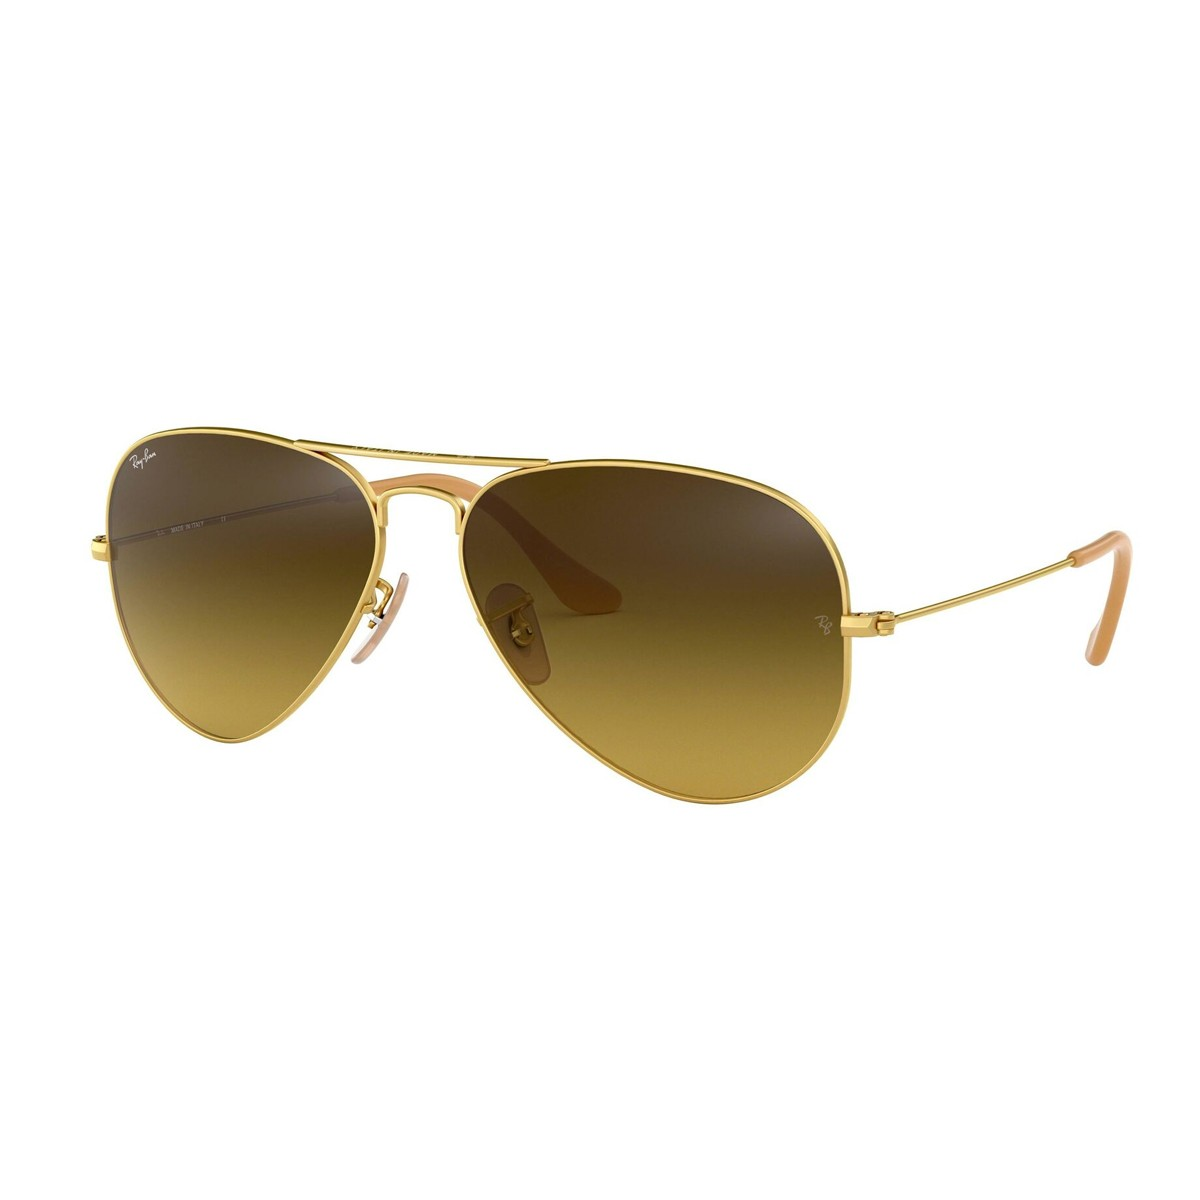 Ray-Ban Aviator RB 3025 | Occhiali da sole Unisex